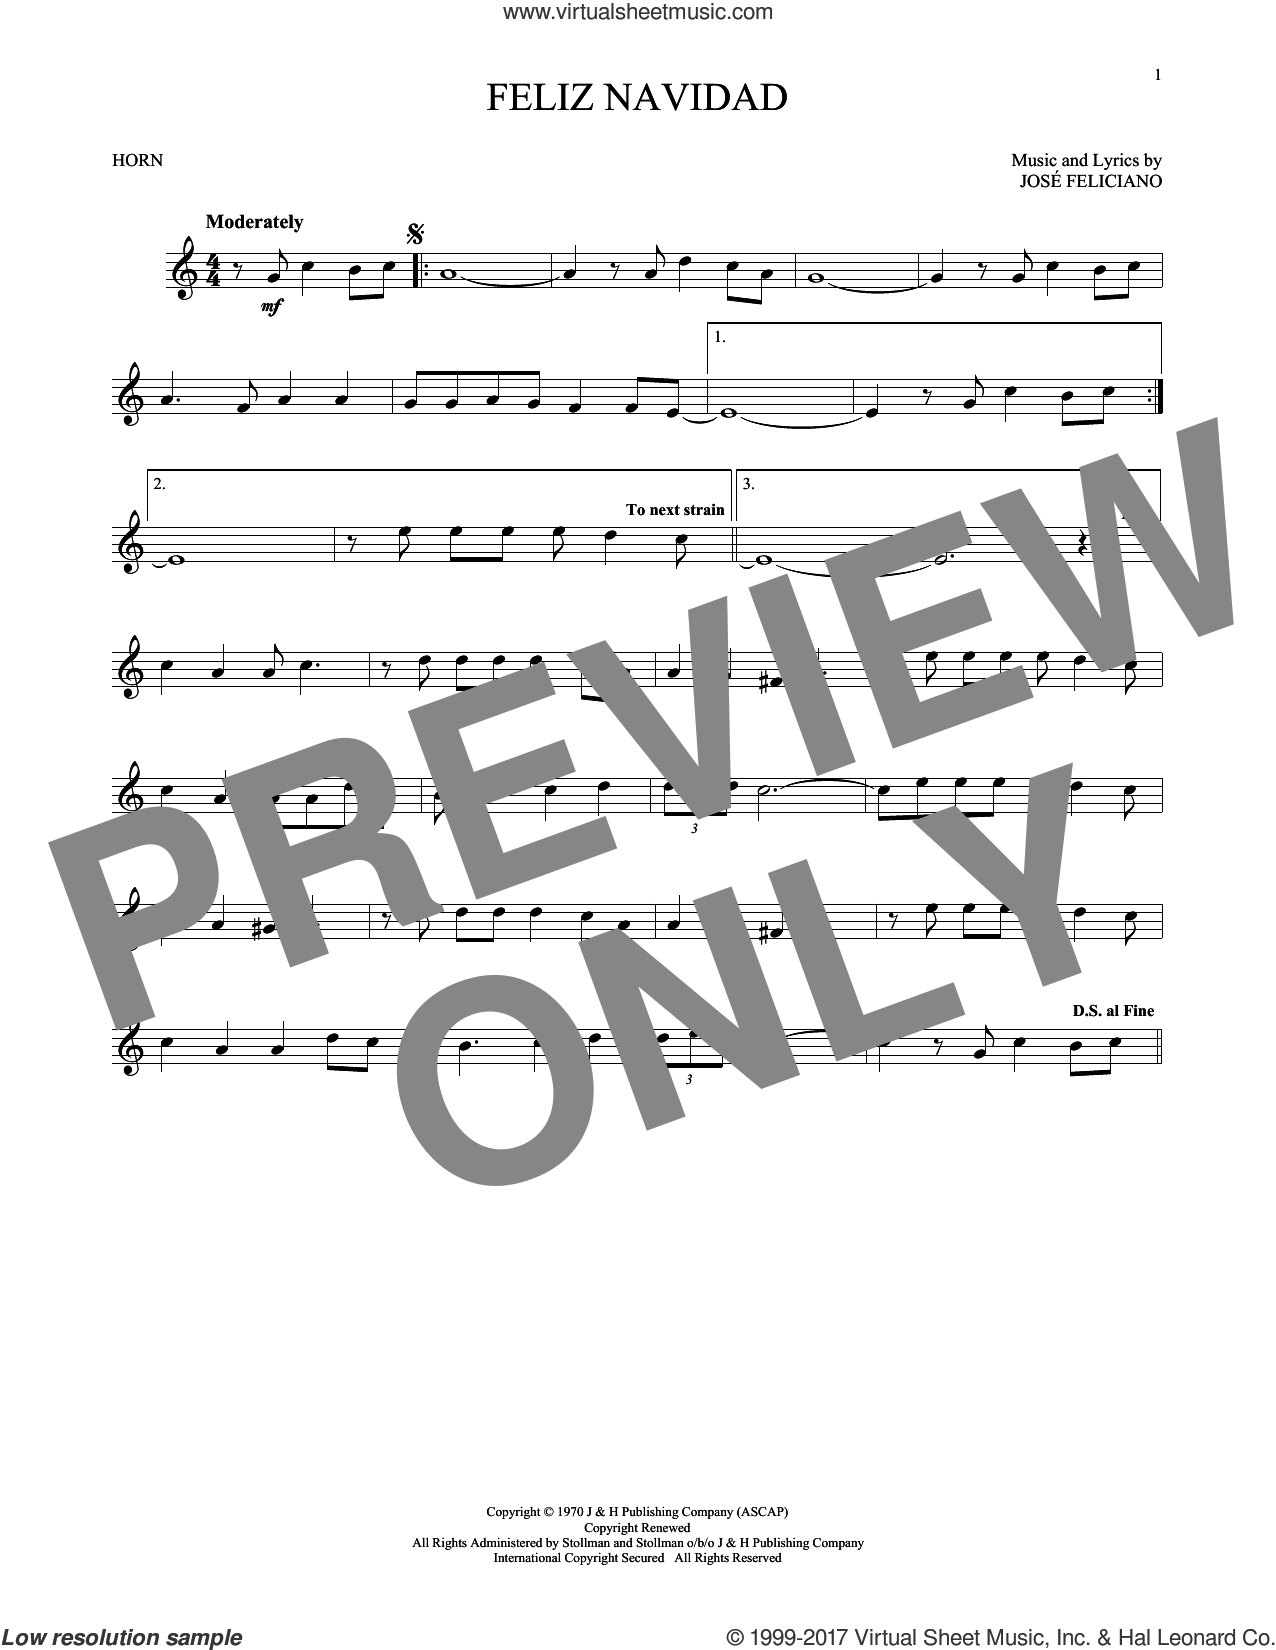 Feliz Navidad sheet music for horn solo by Jose Feliciano, intermediate skill level